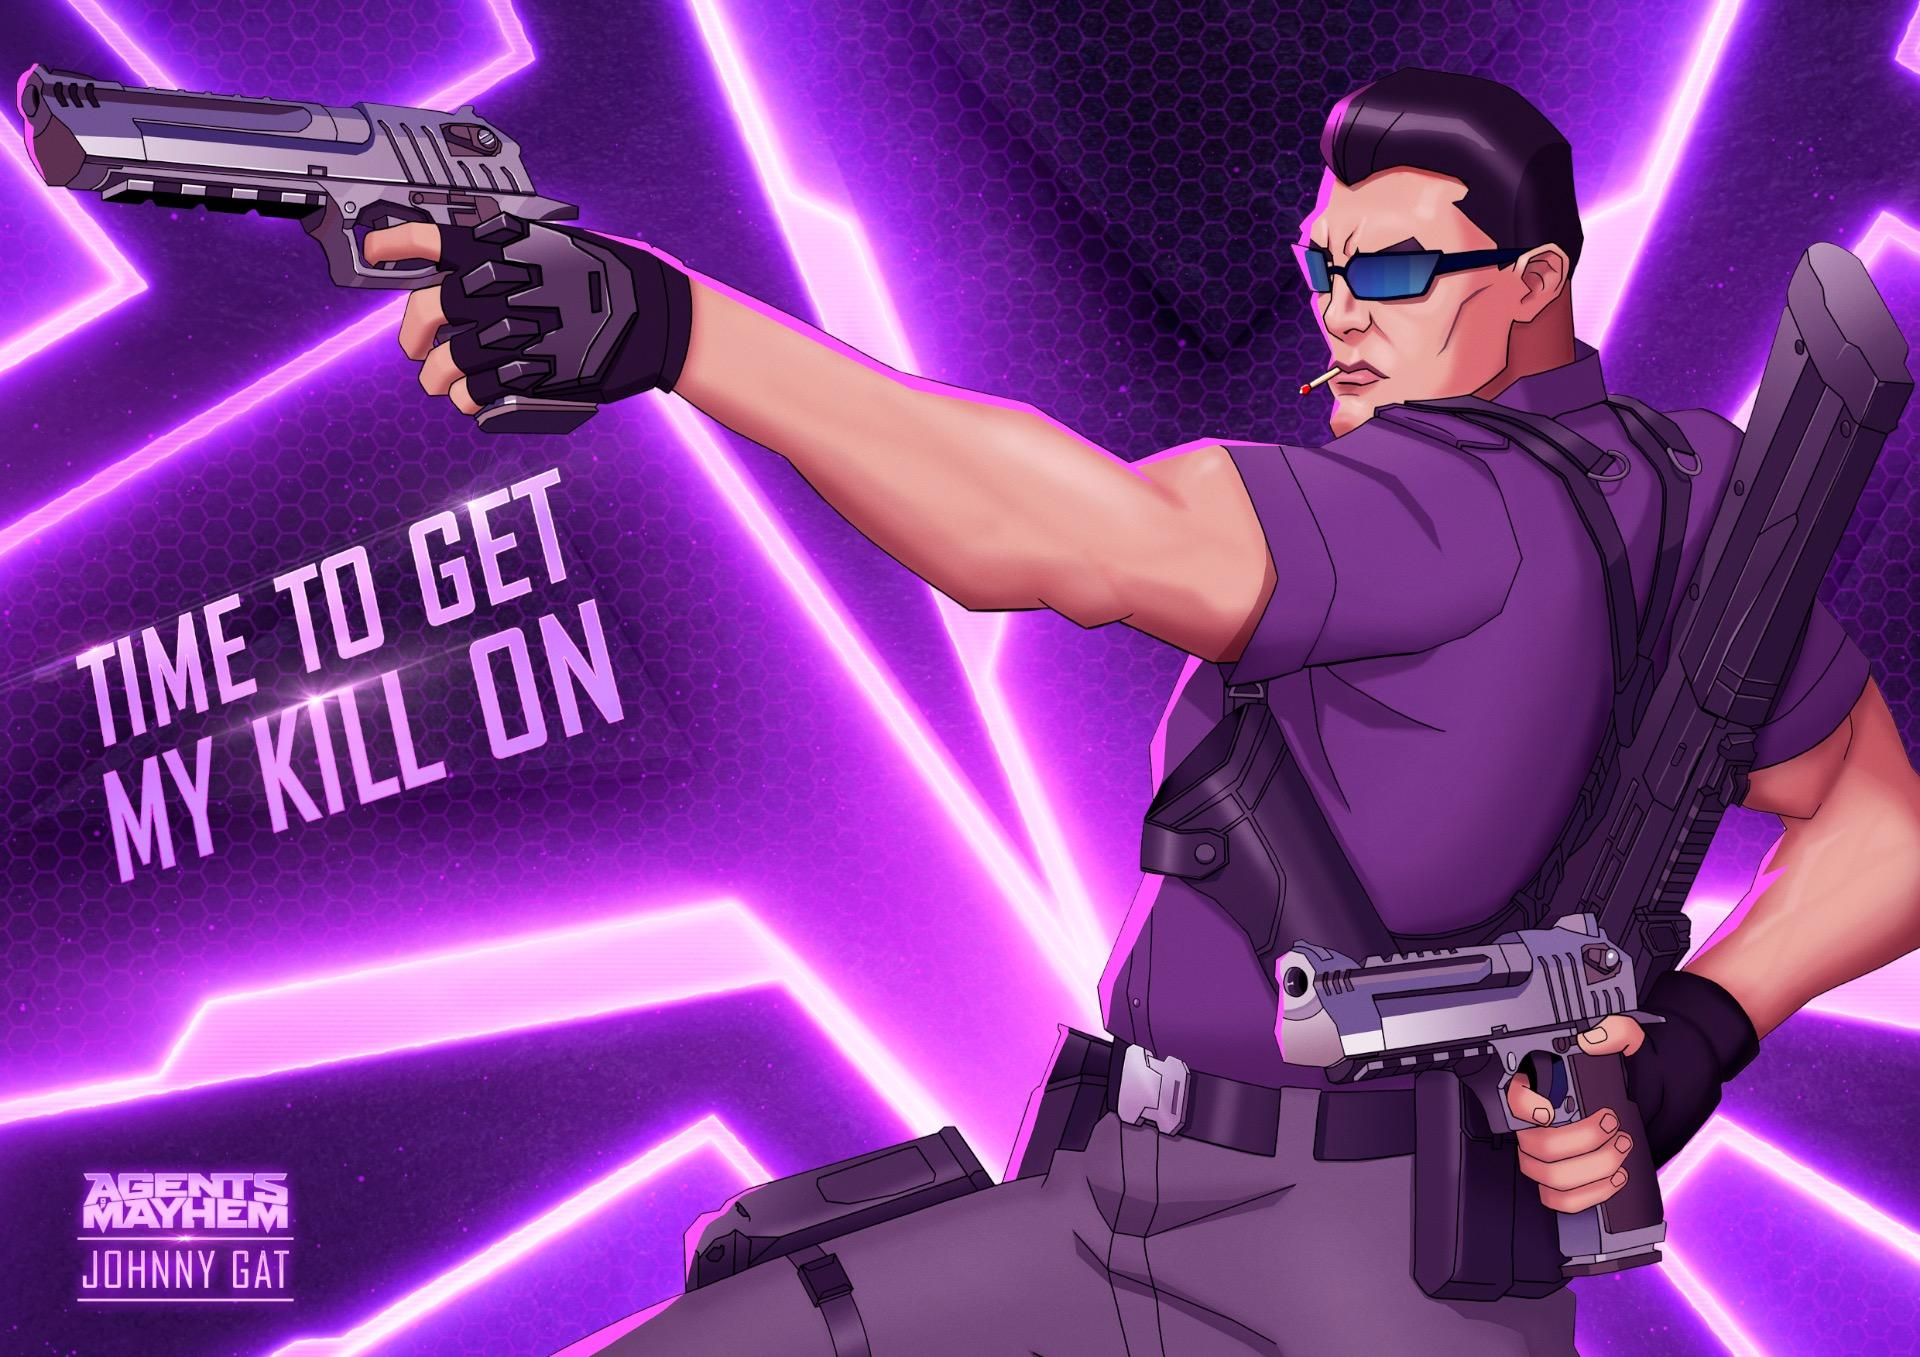 Saints Row's Johnny Gat Joins Agents of Mayhem